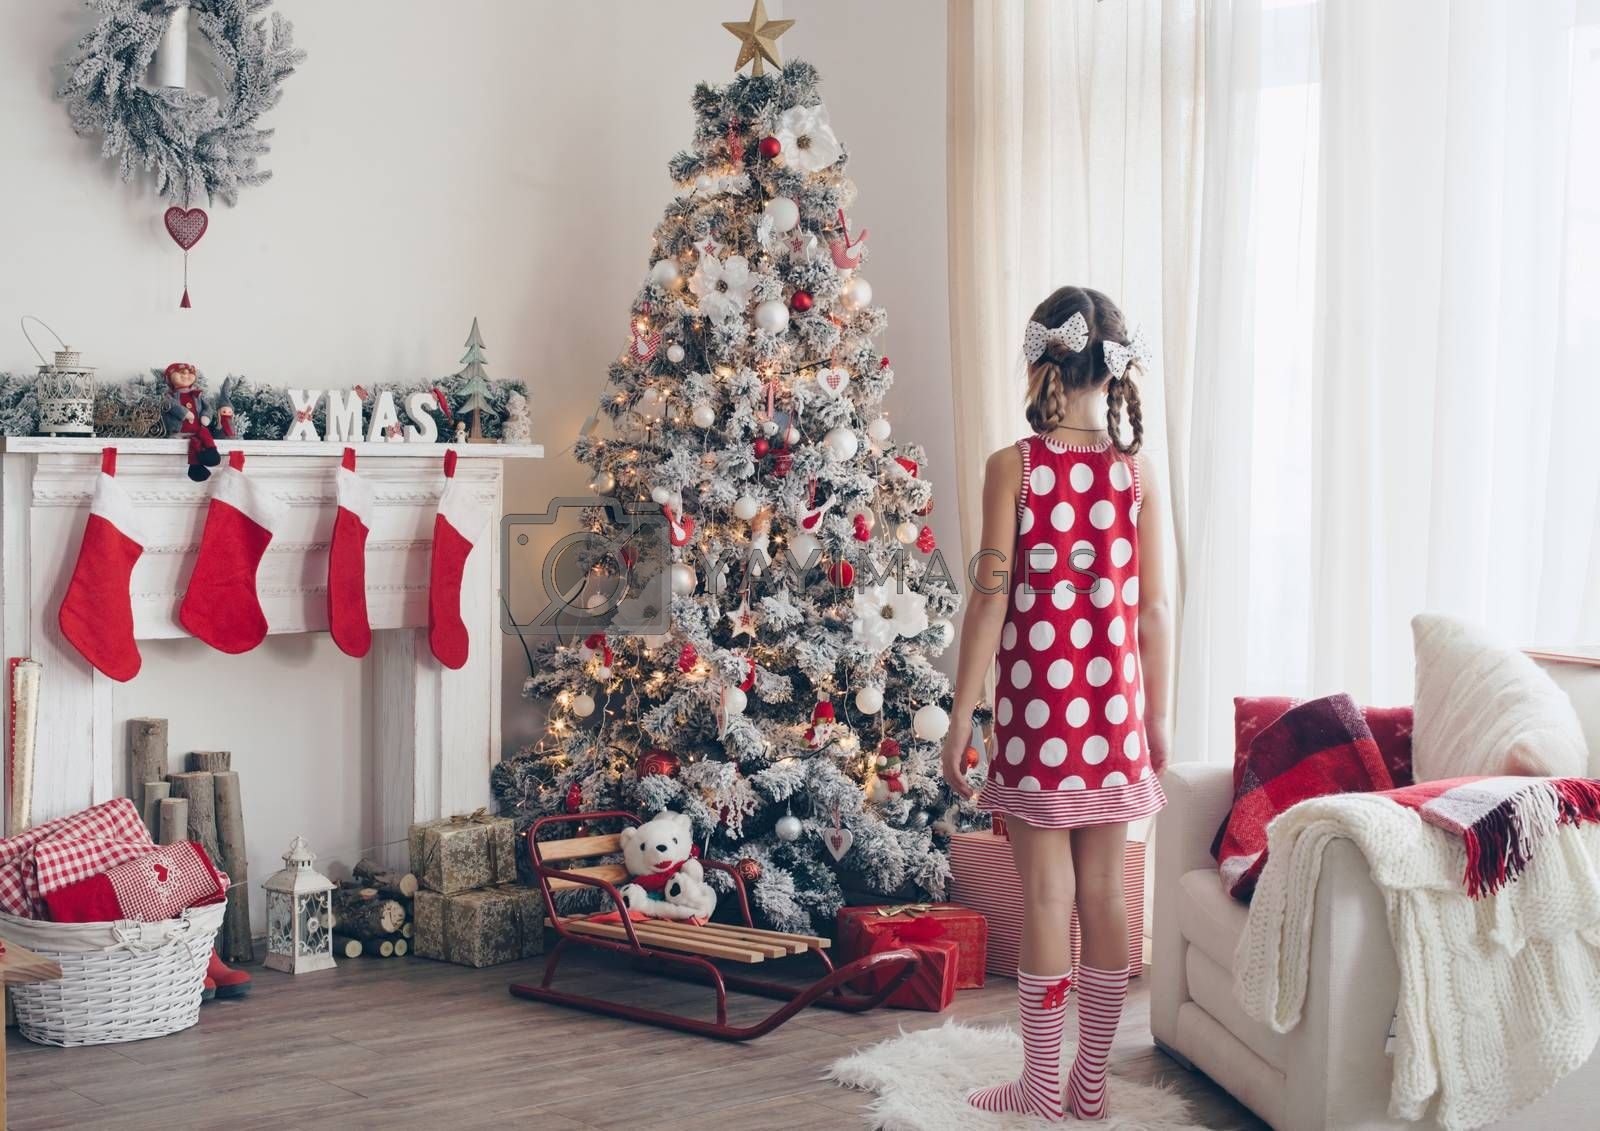 Child girl standing near decorated Christmas tree and fireplace in beautiful hotel room in the holiday morning